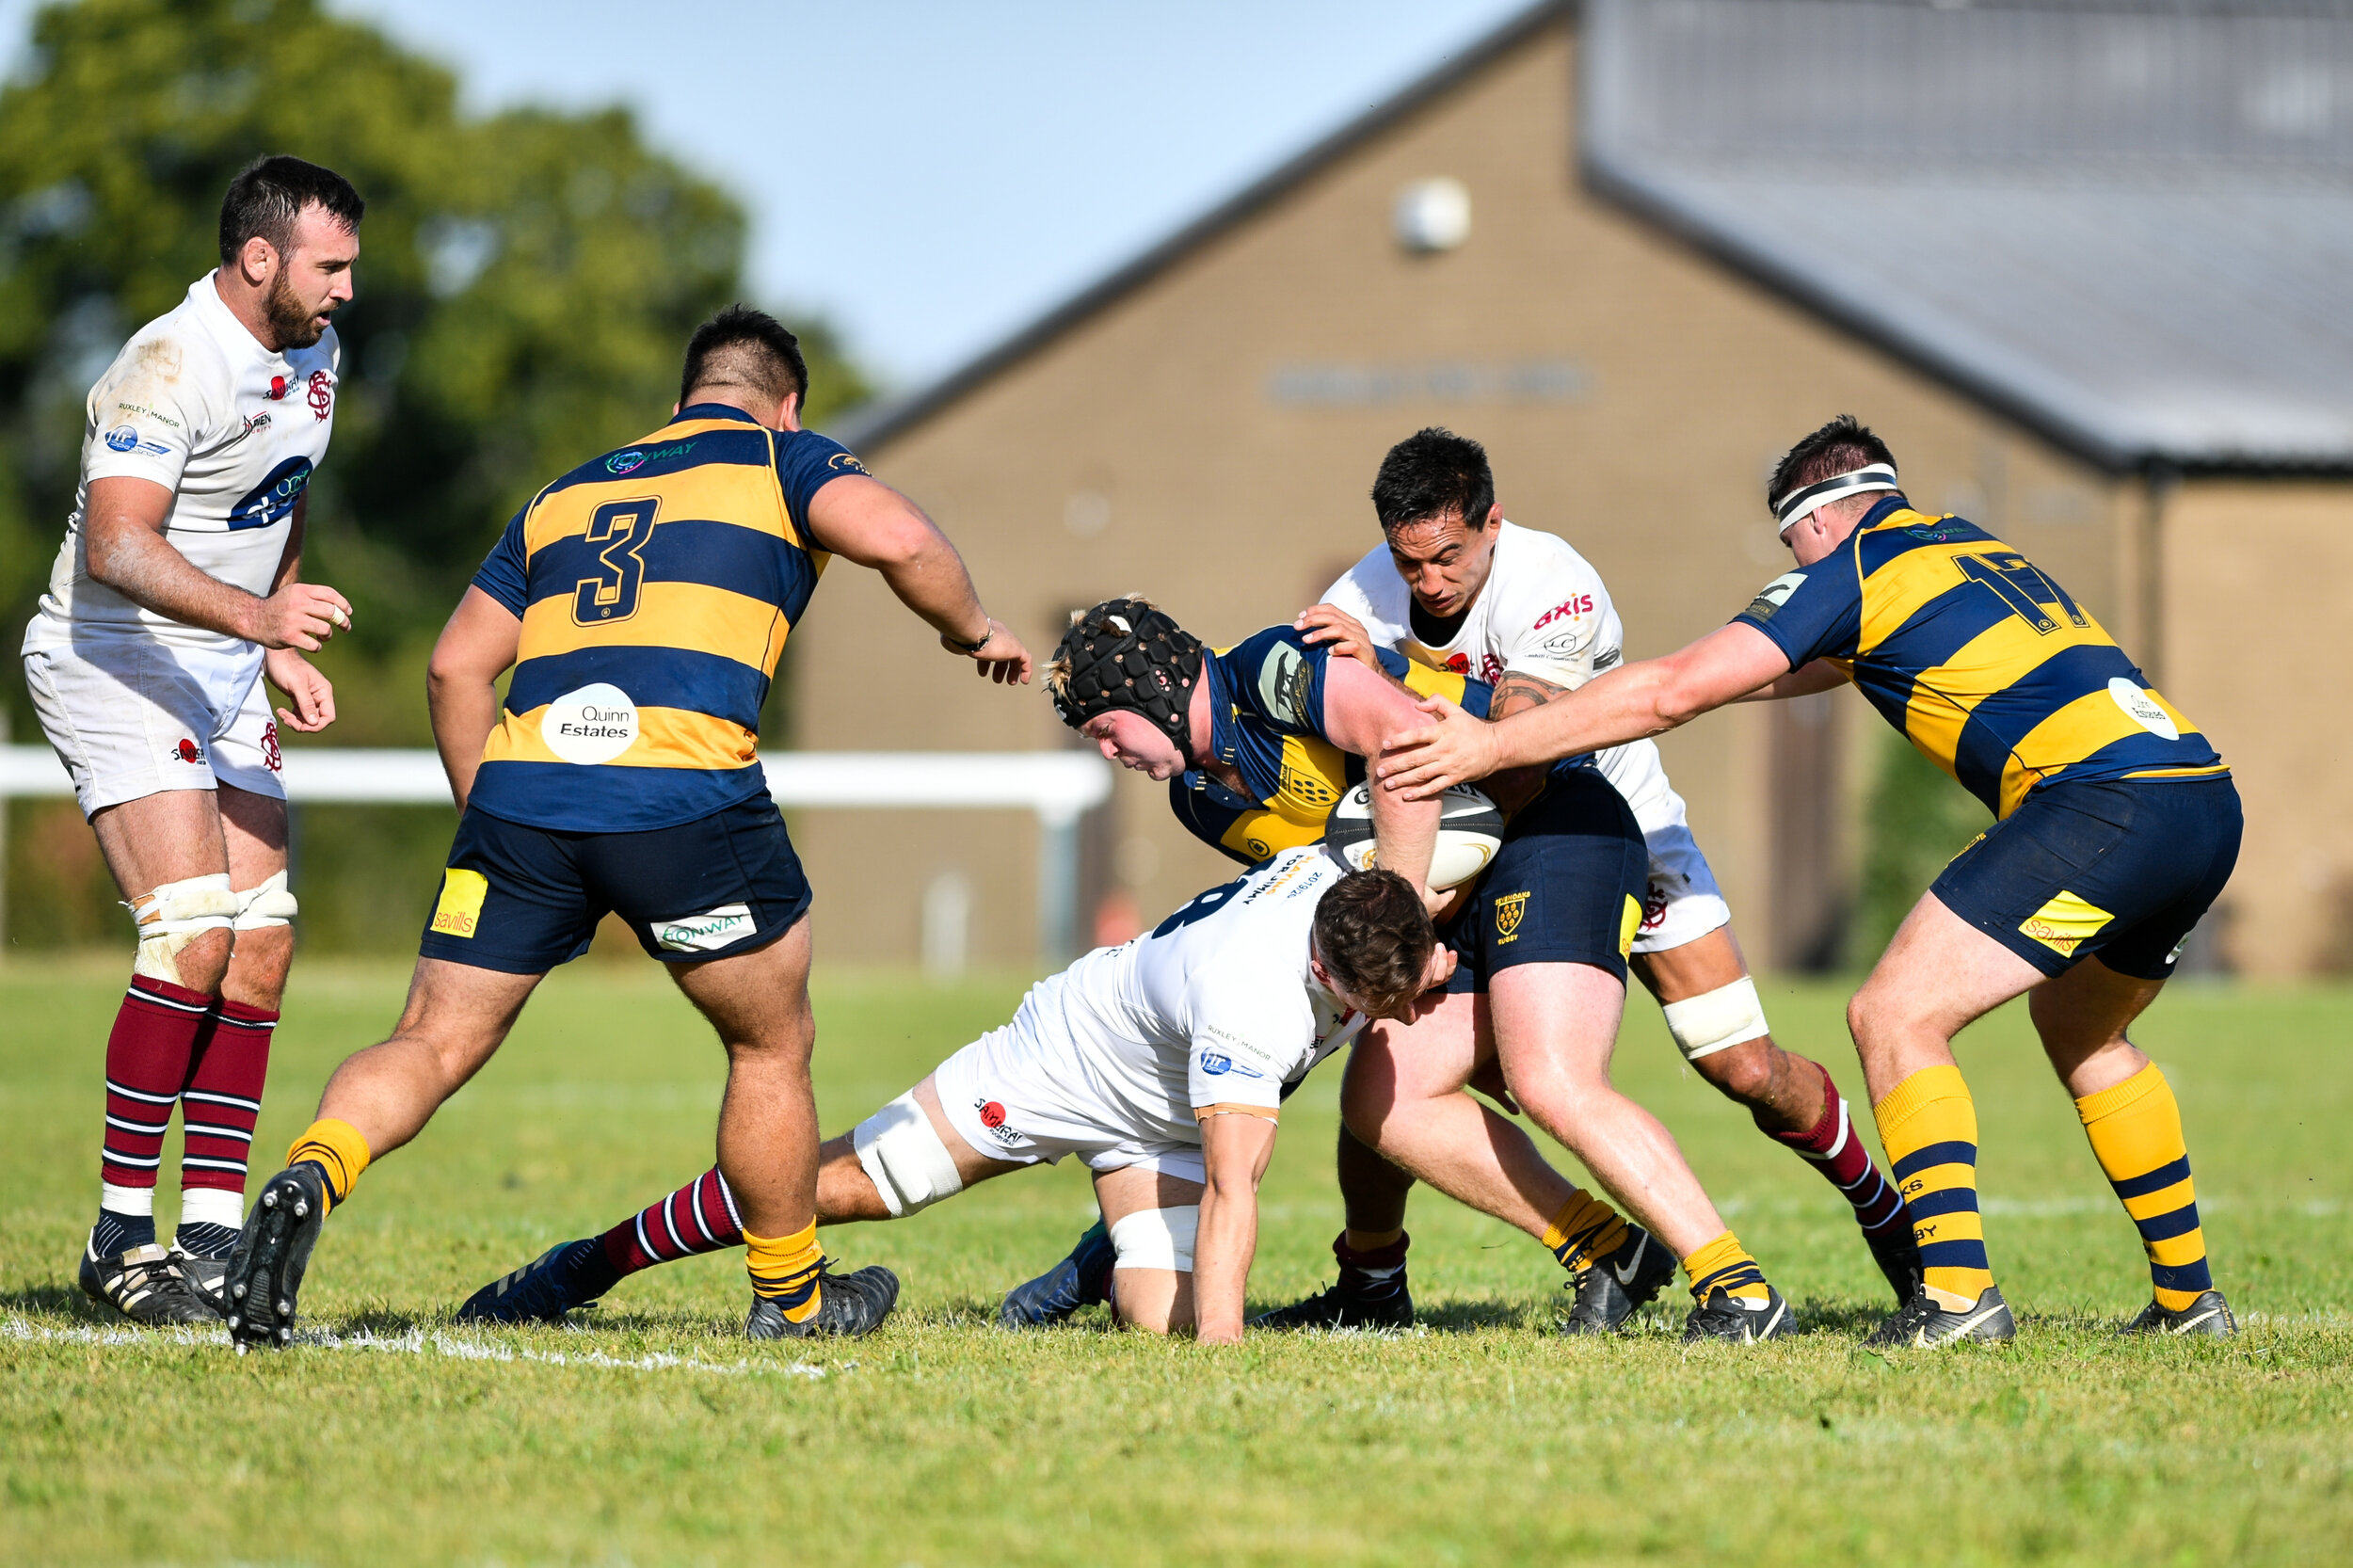 No way through. Oaks prop Alex Rolfe is stopped by two Sidcup RFC defenders. Photo credit: David Purday